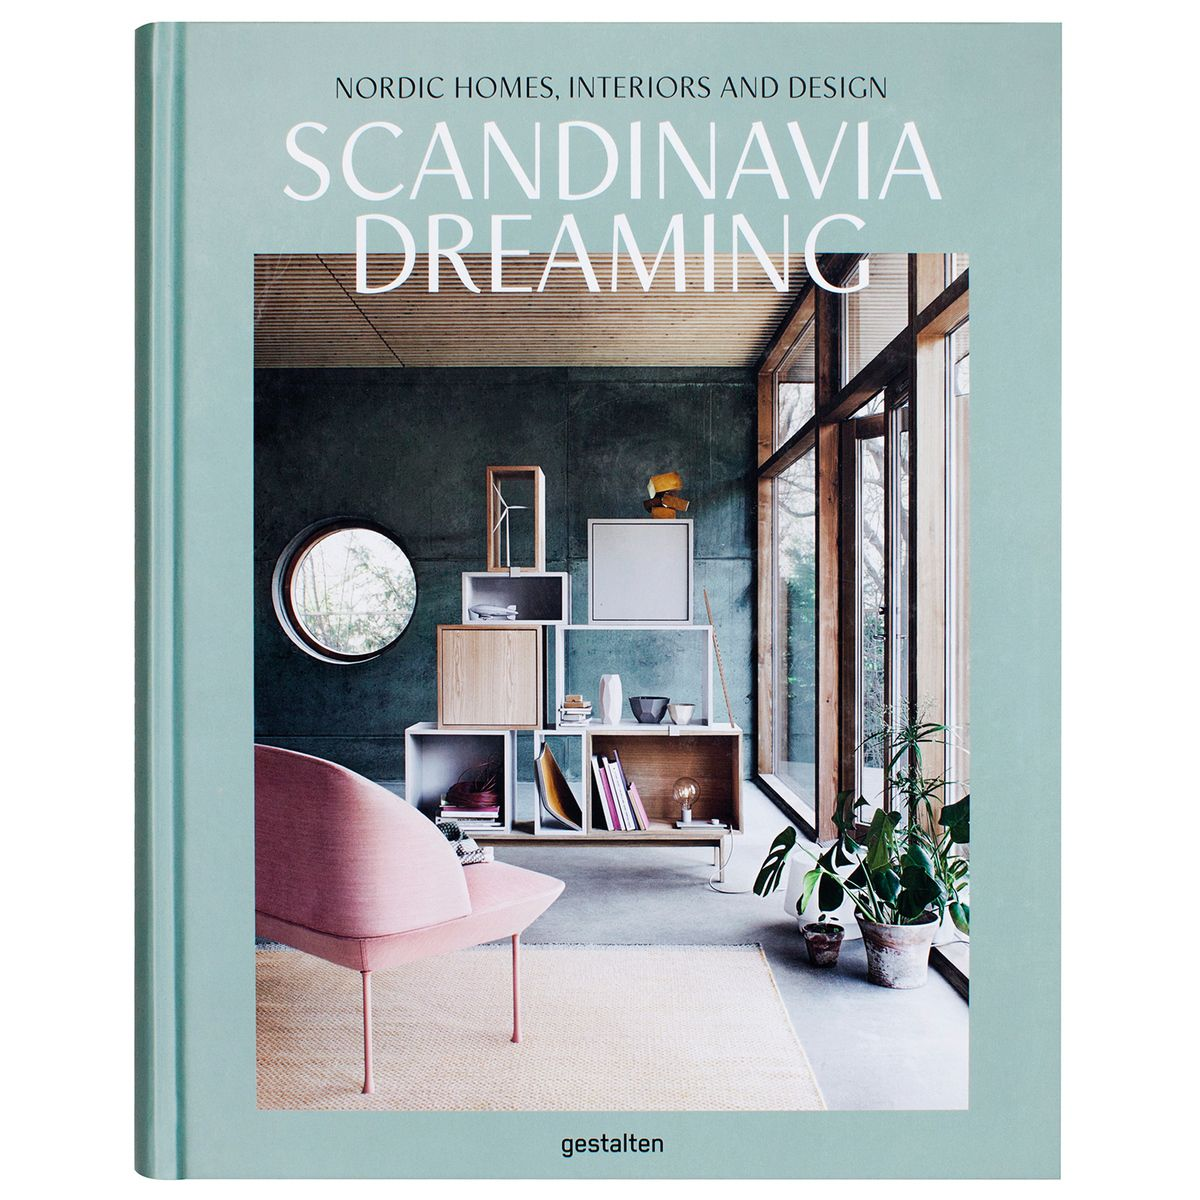 Gestalten Scandinavia Dreaming Nordic Homes Interiors And Design Interior Design Nordic Home Nordic Interior Design